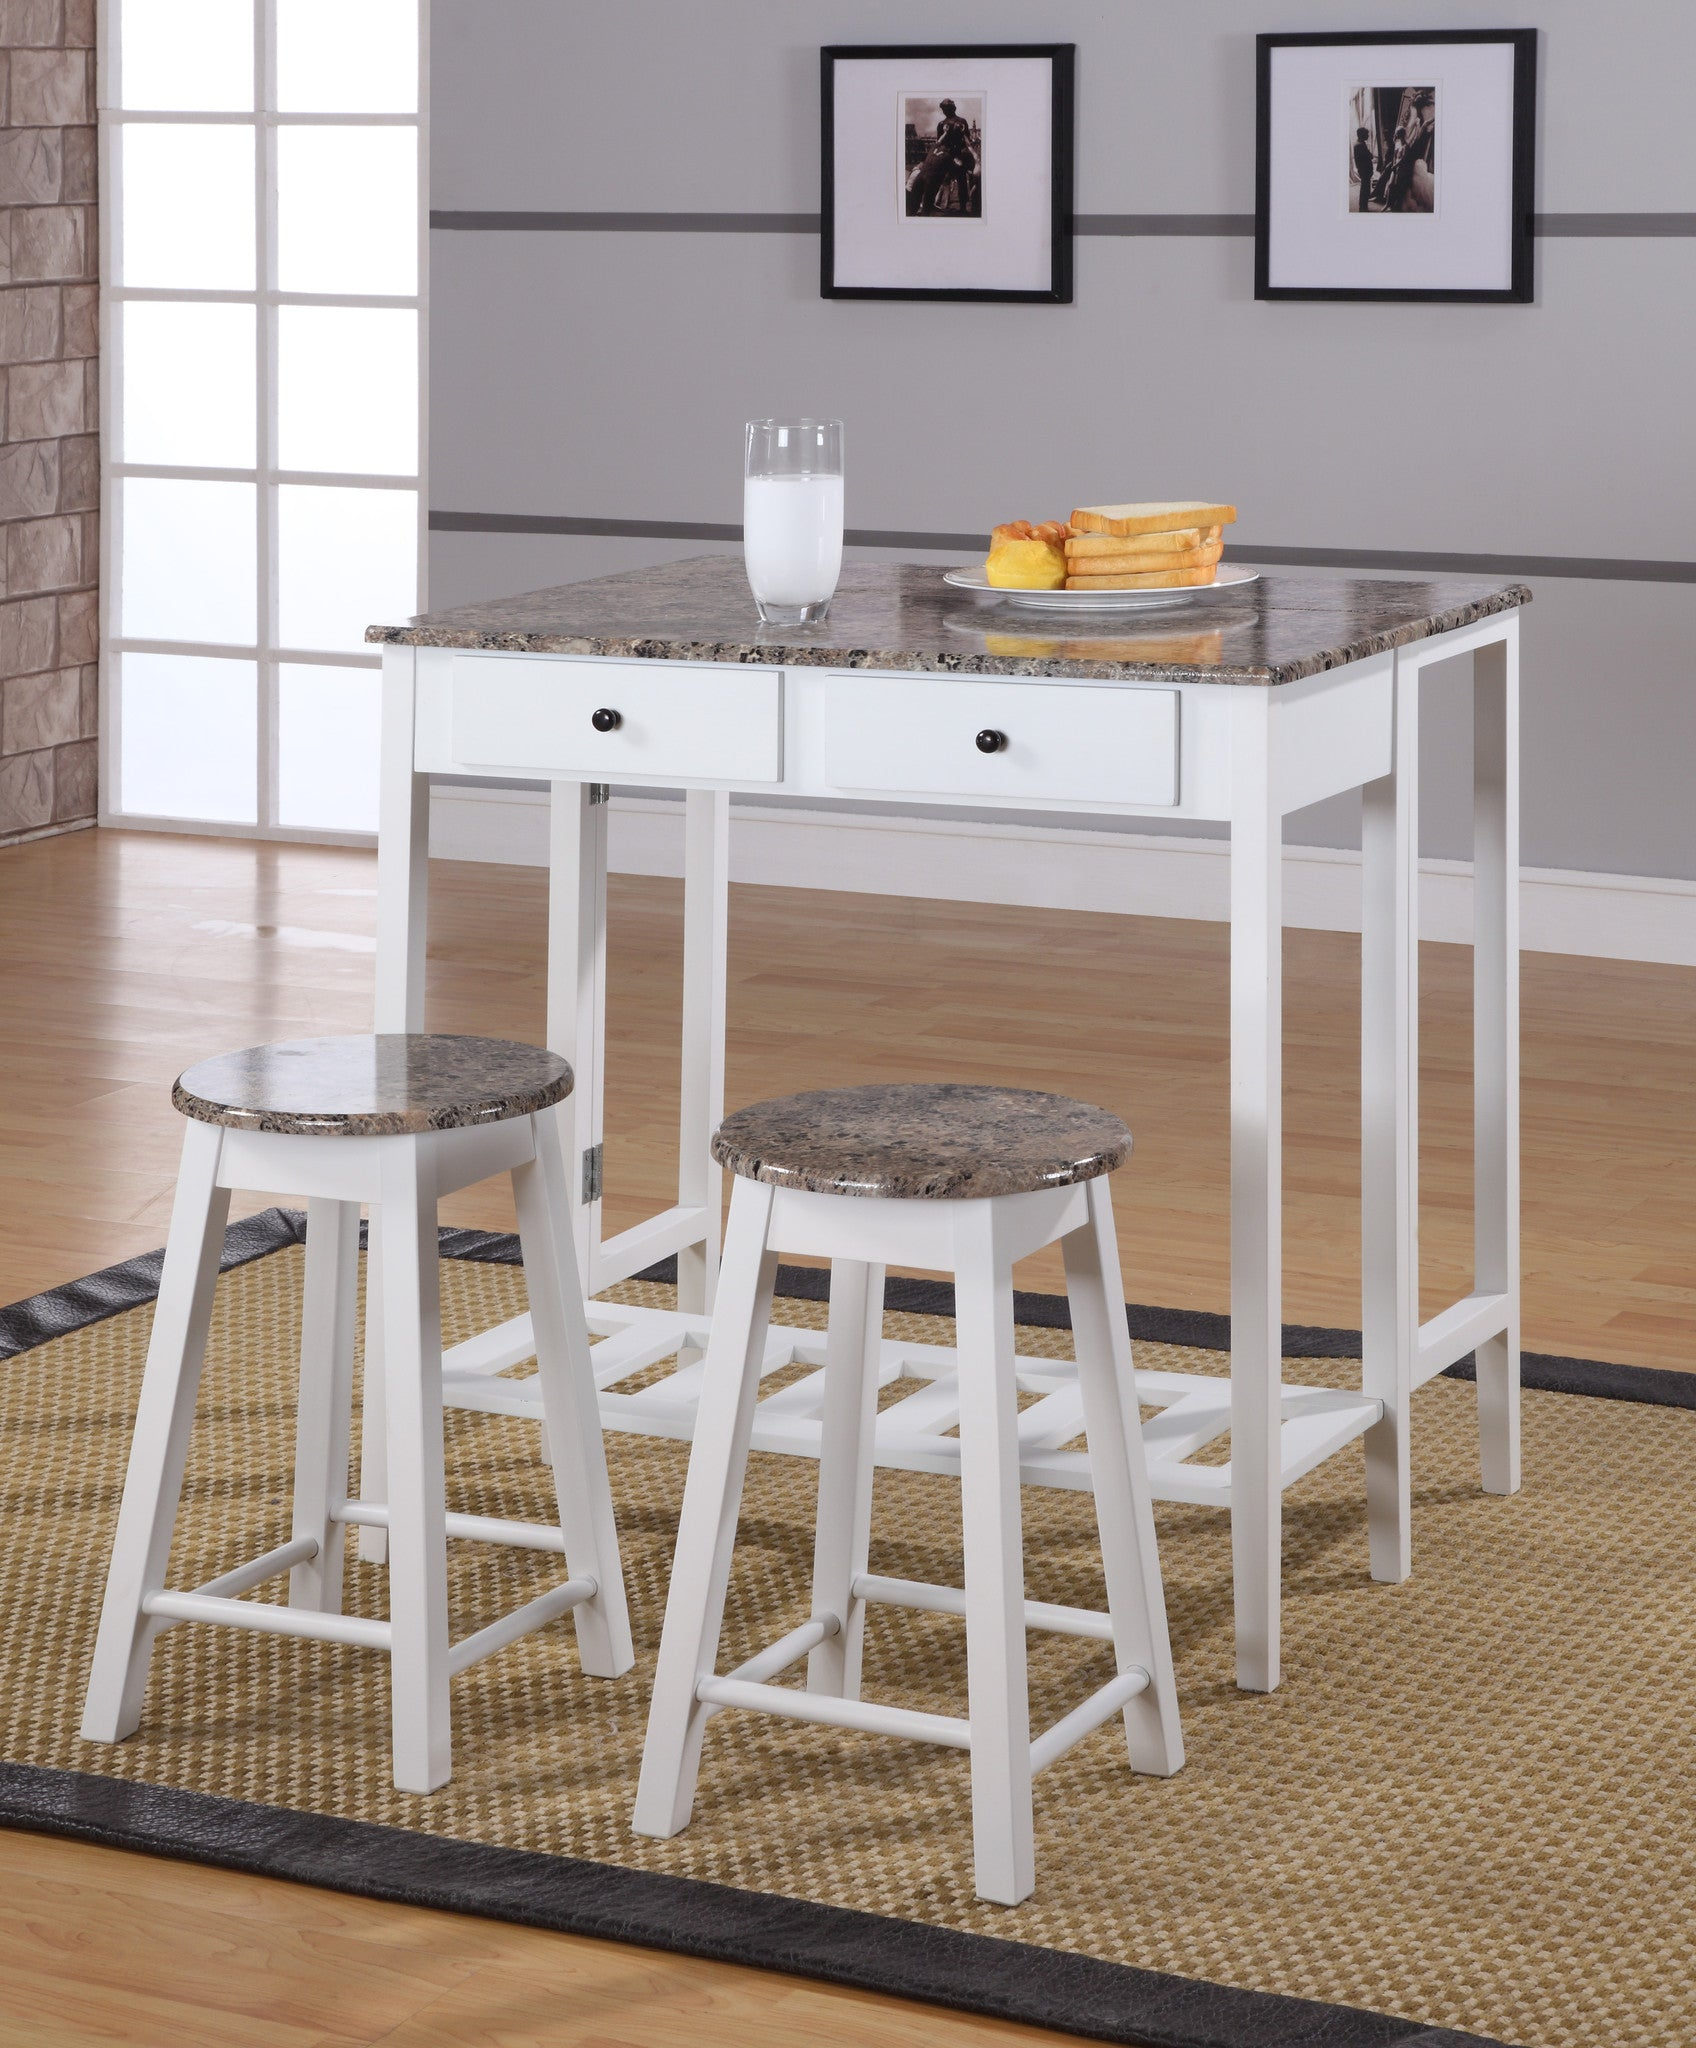 Rave 3 Piece Kitchen Breakfast Pub Set White With Marble Top Wood Contemporary Folding Drop Down Table 2 Stools 2 Storage Drawers